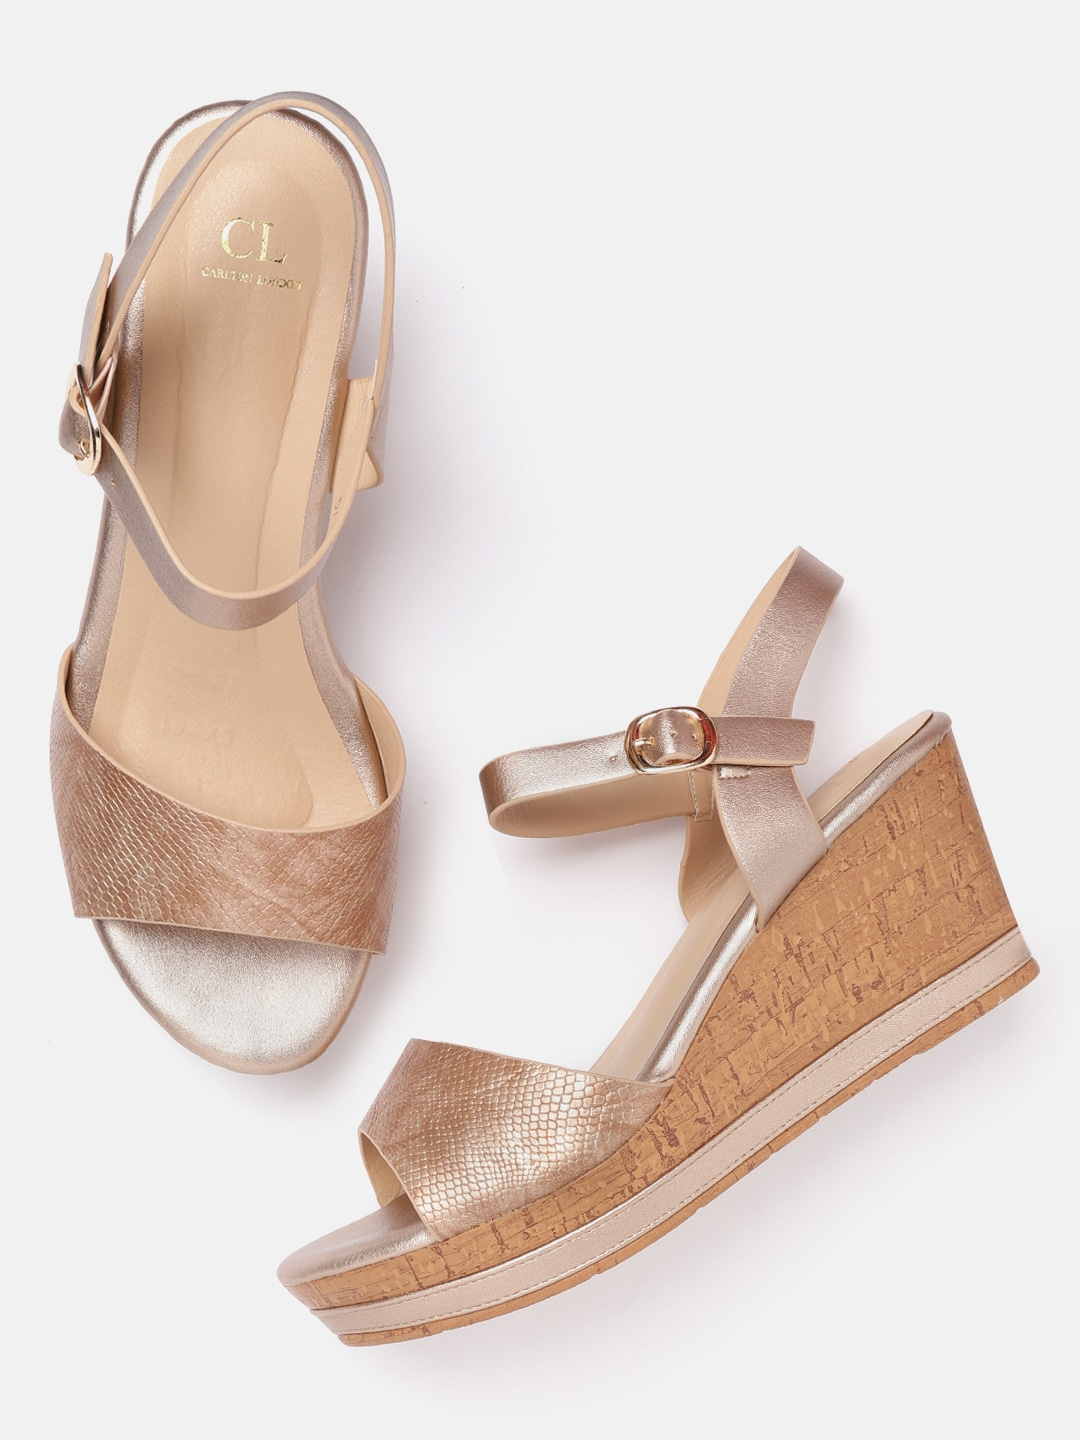 Rose Gold-Toned Snakeskin Textured Wedges